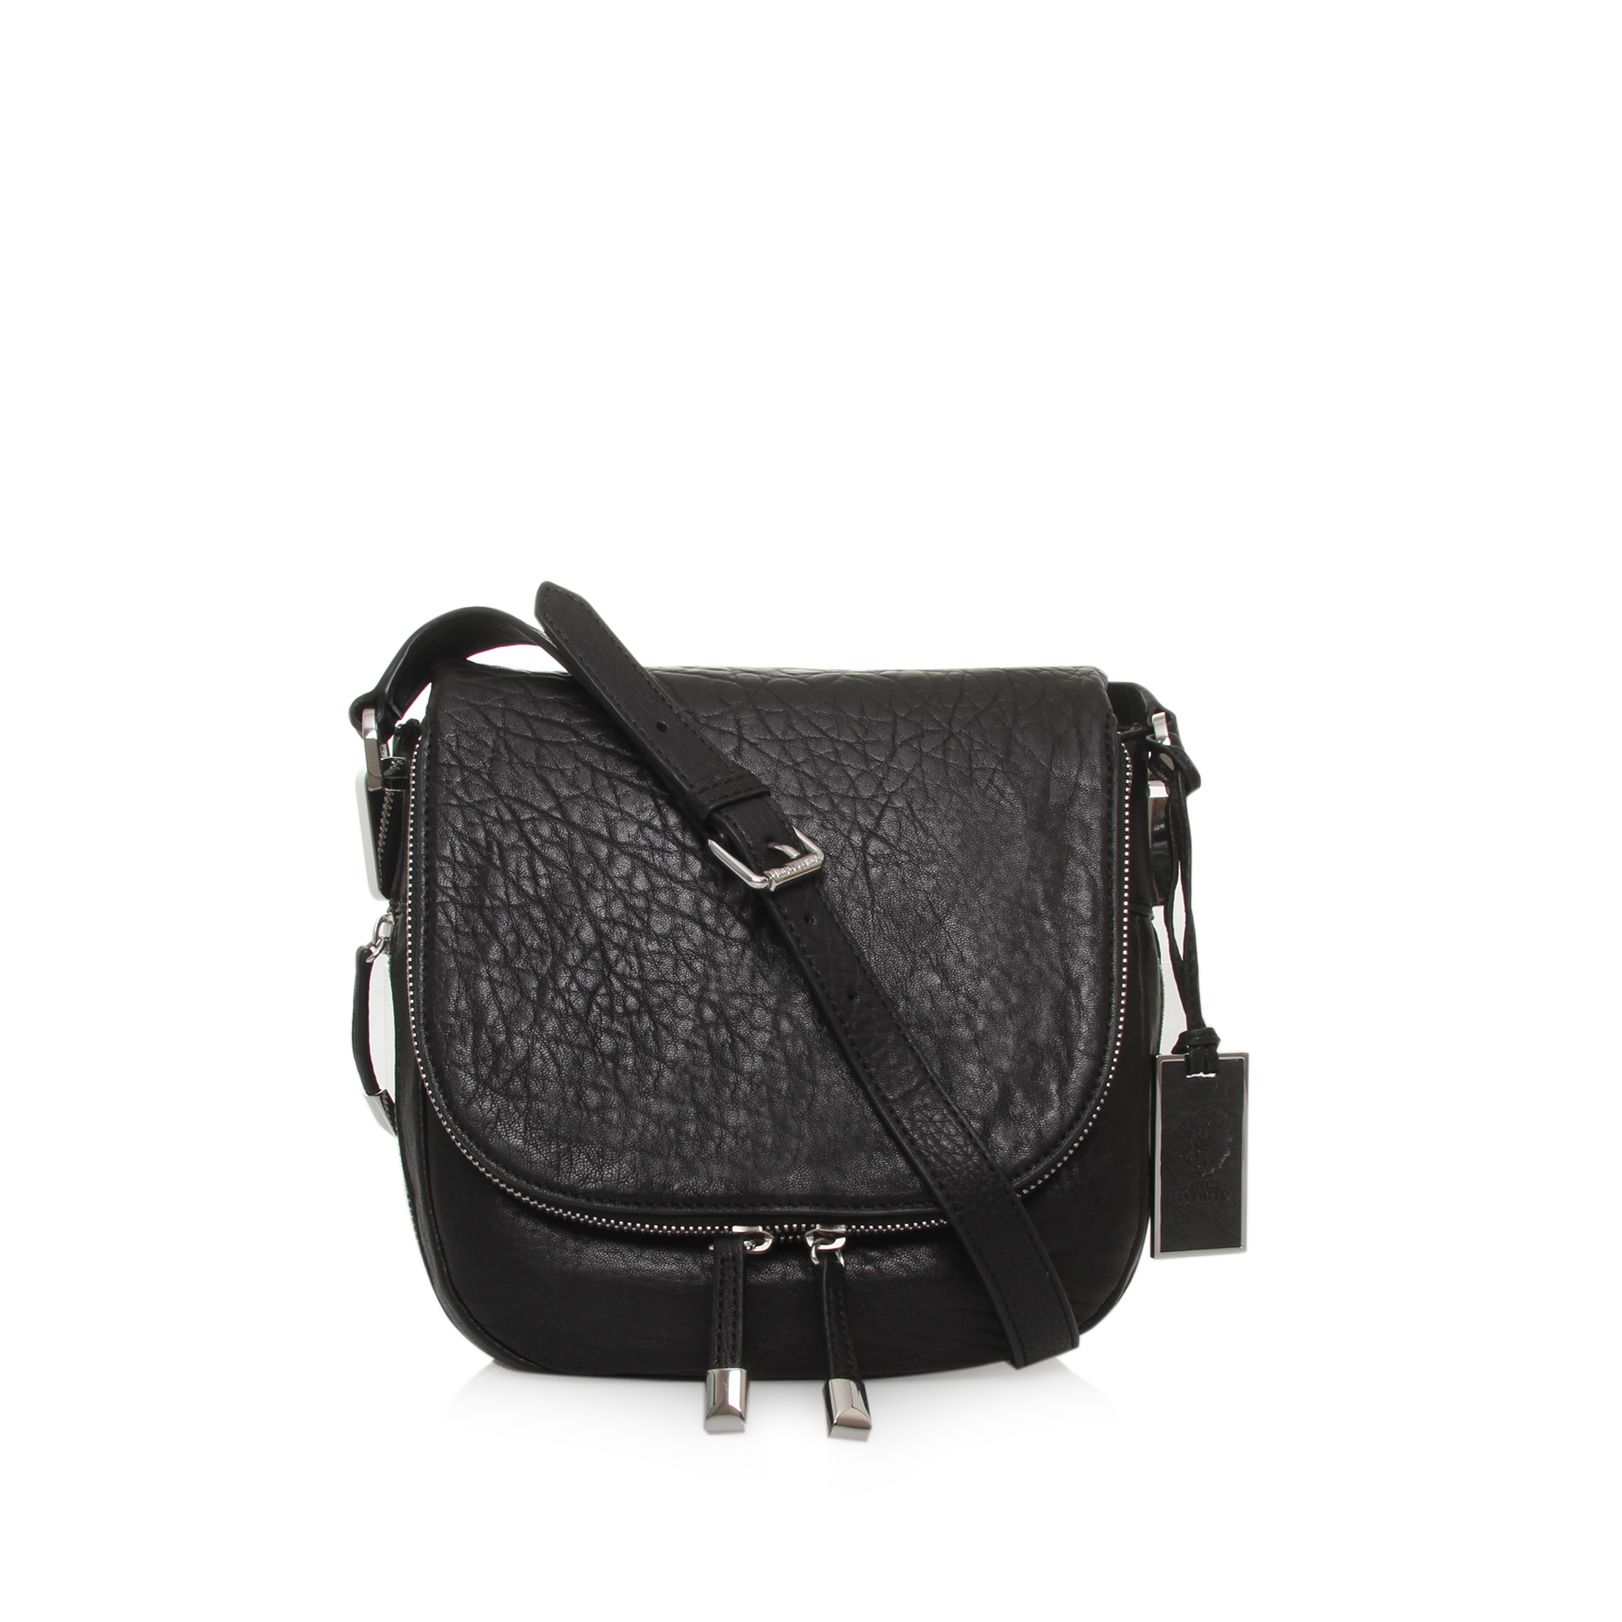 Riley crossbody bag